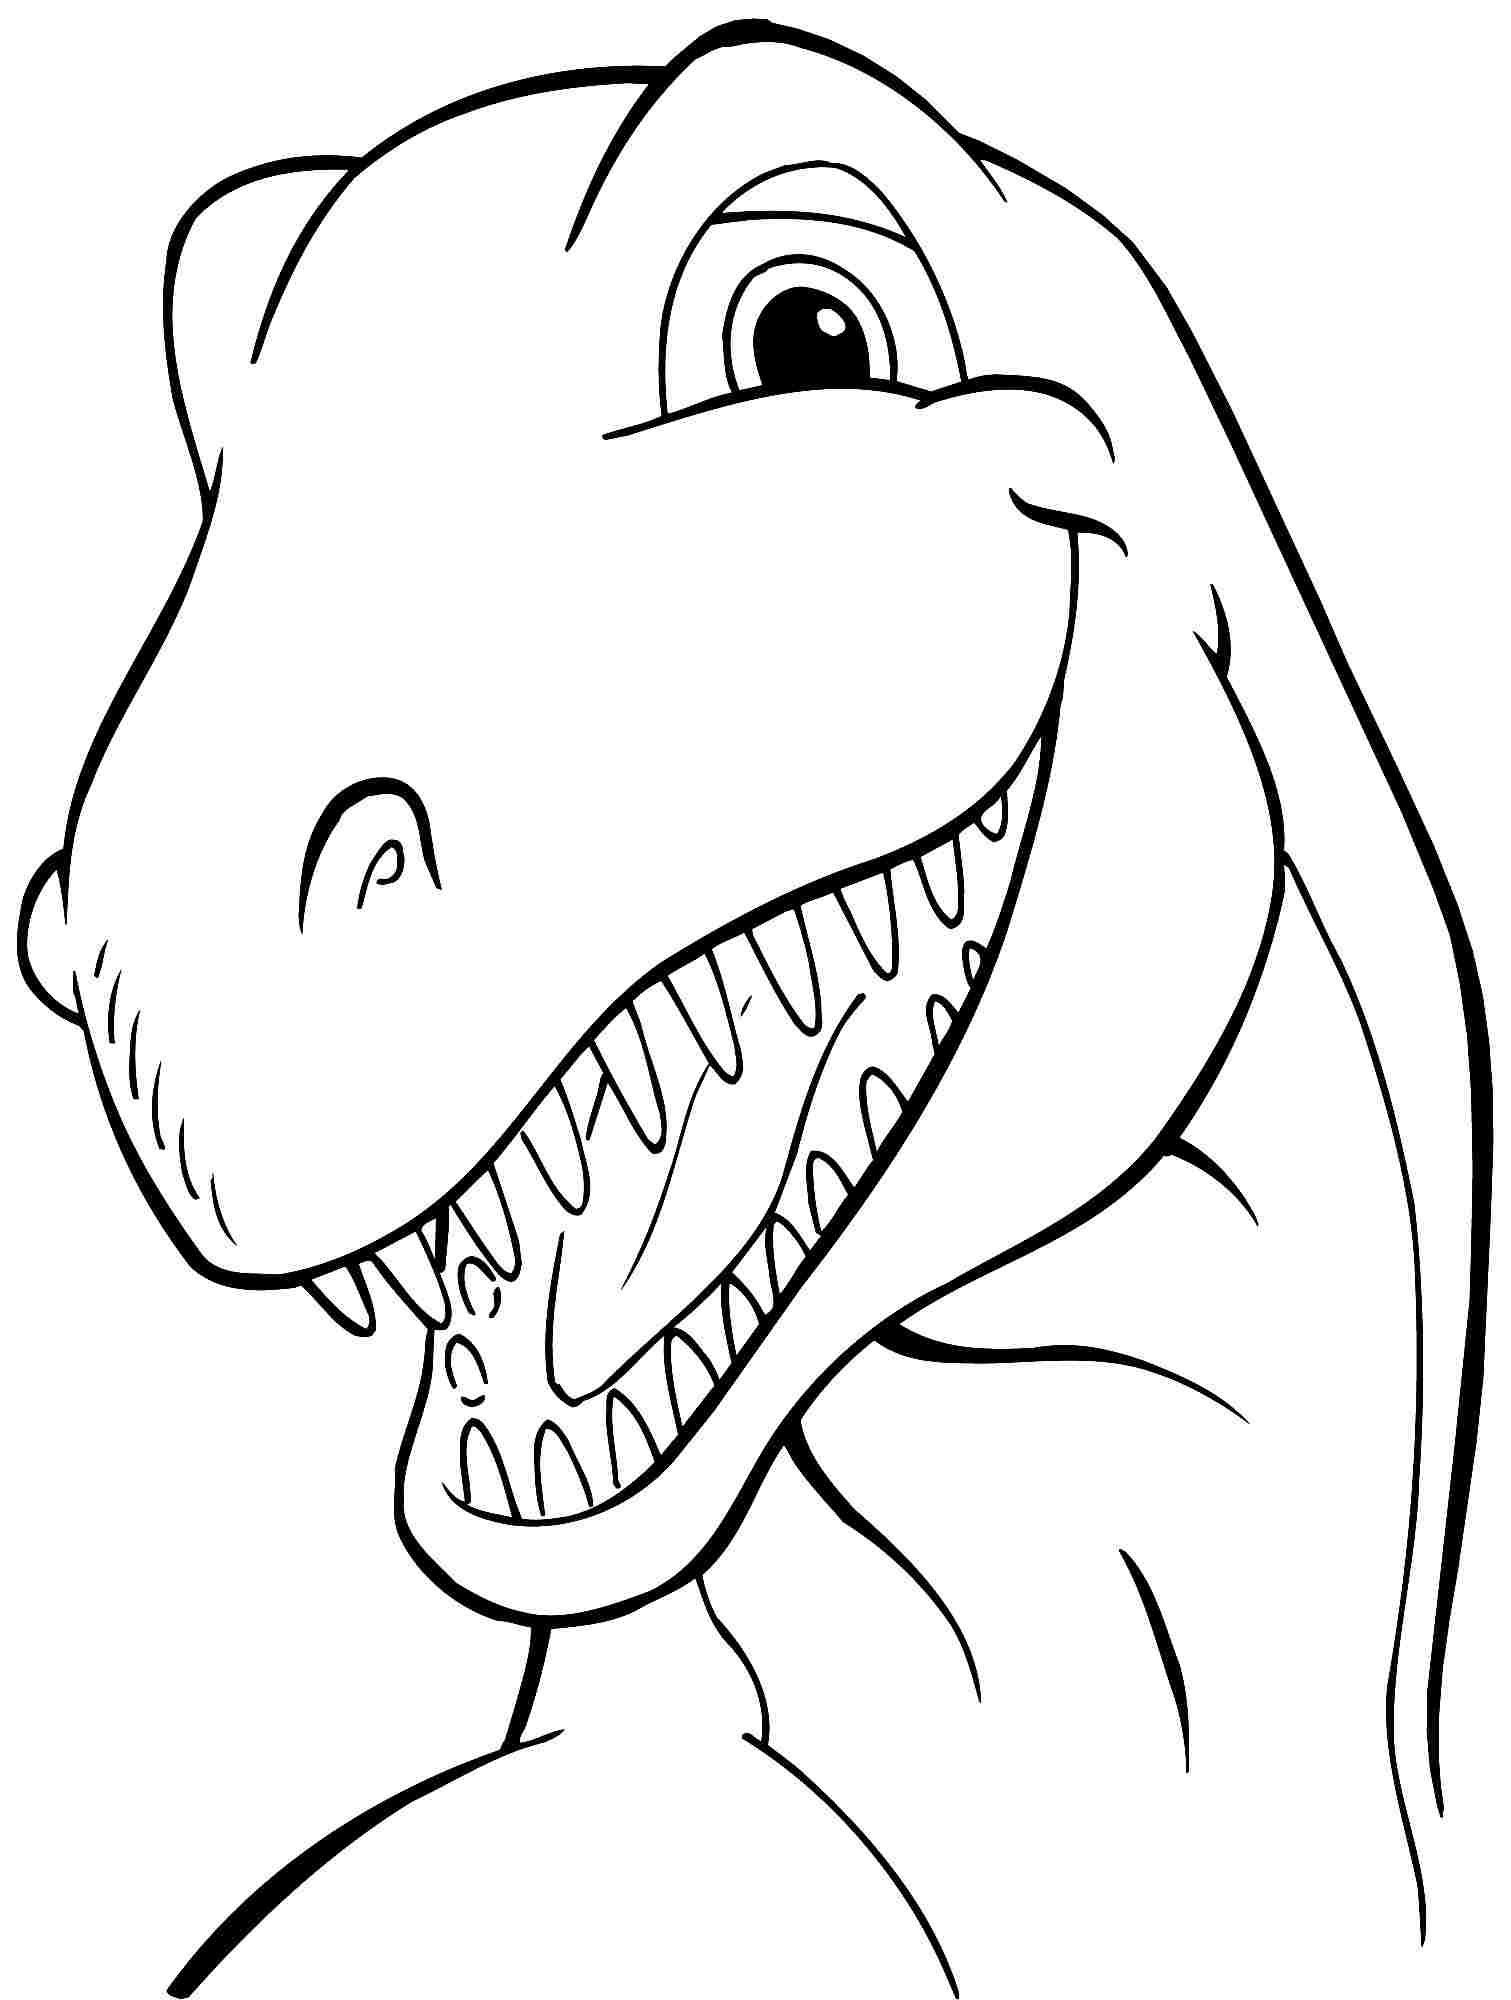 dinosaur printables girl dinosaur coloring pages at getcoloringscom free printables dinosaur